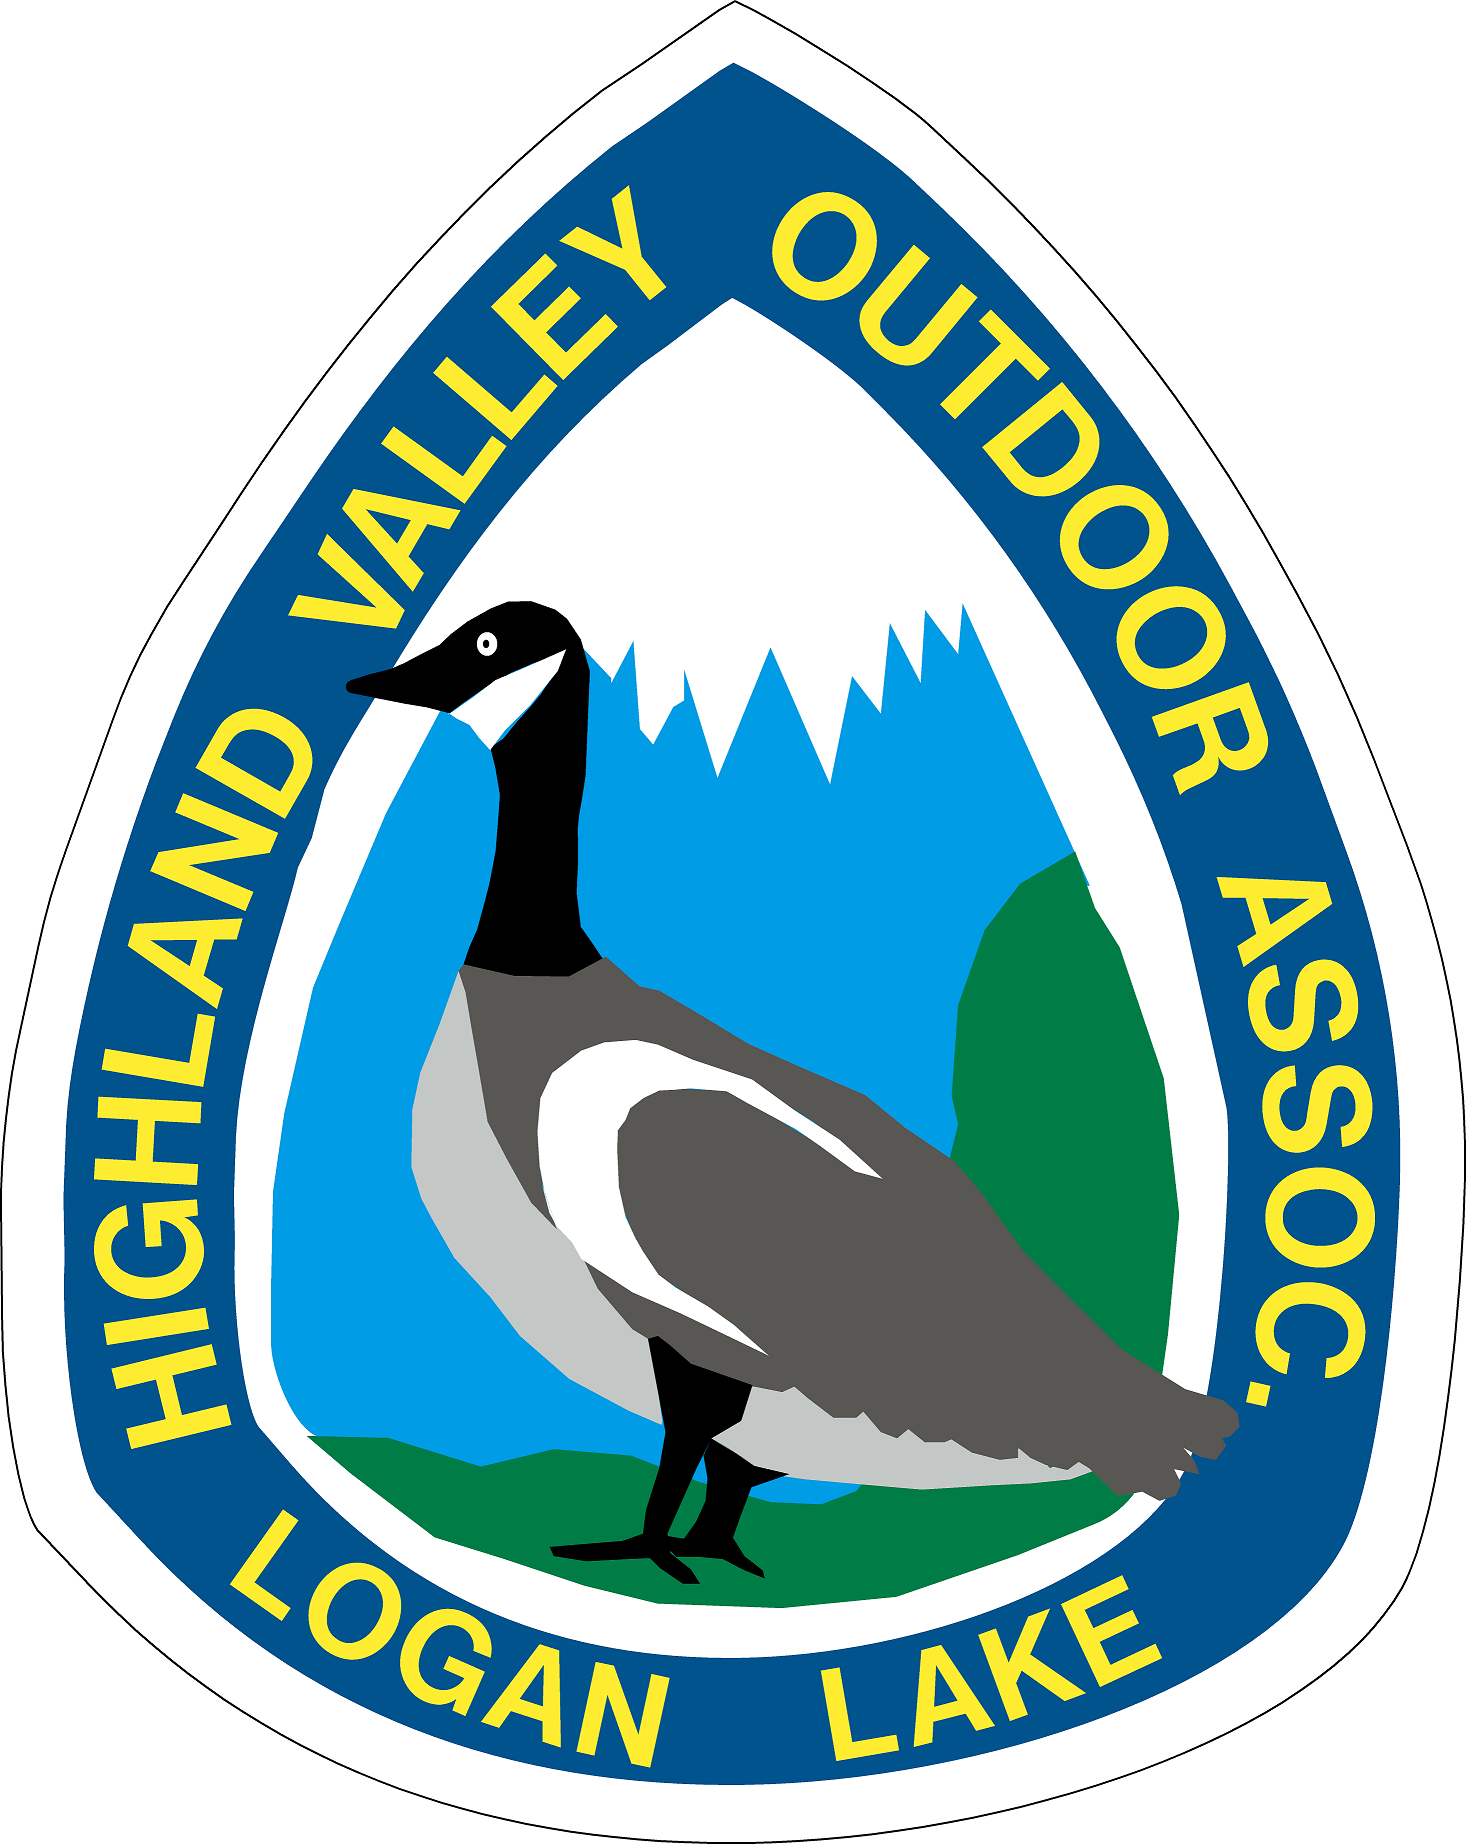 Outdoor clipart valley OUTDOOR ASSOCIATION Association Aug Membership